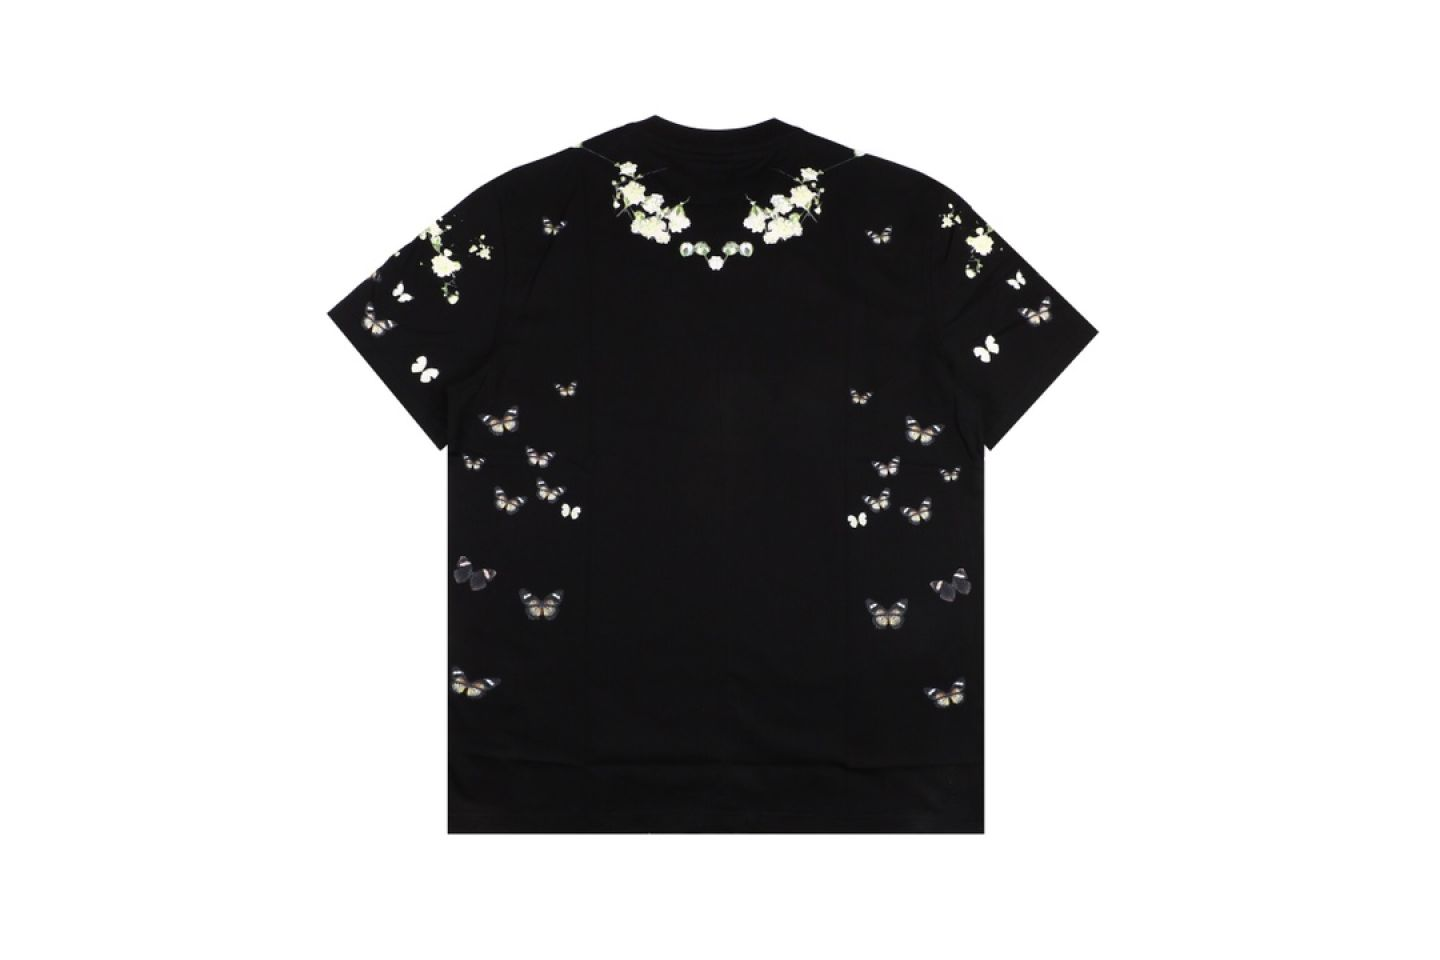 Shirt Givenchy classic Mother Maria short-sleeved T-shirt 5 givenchy_classic_mother_maria_short_sleeved_t_shirt__5